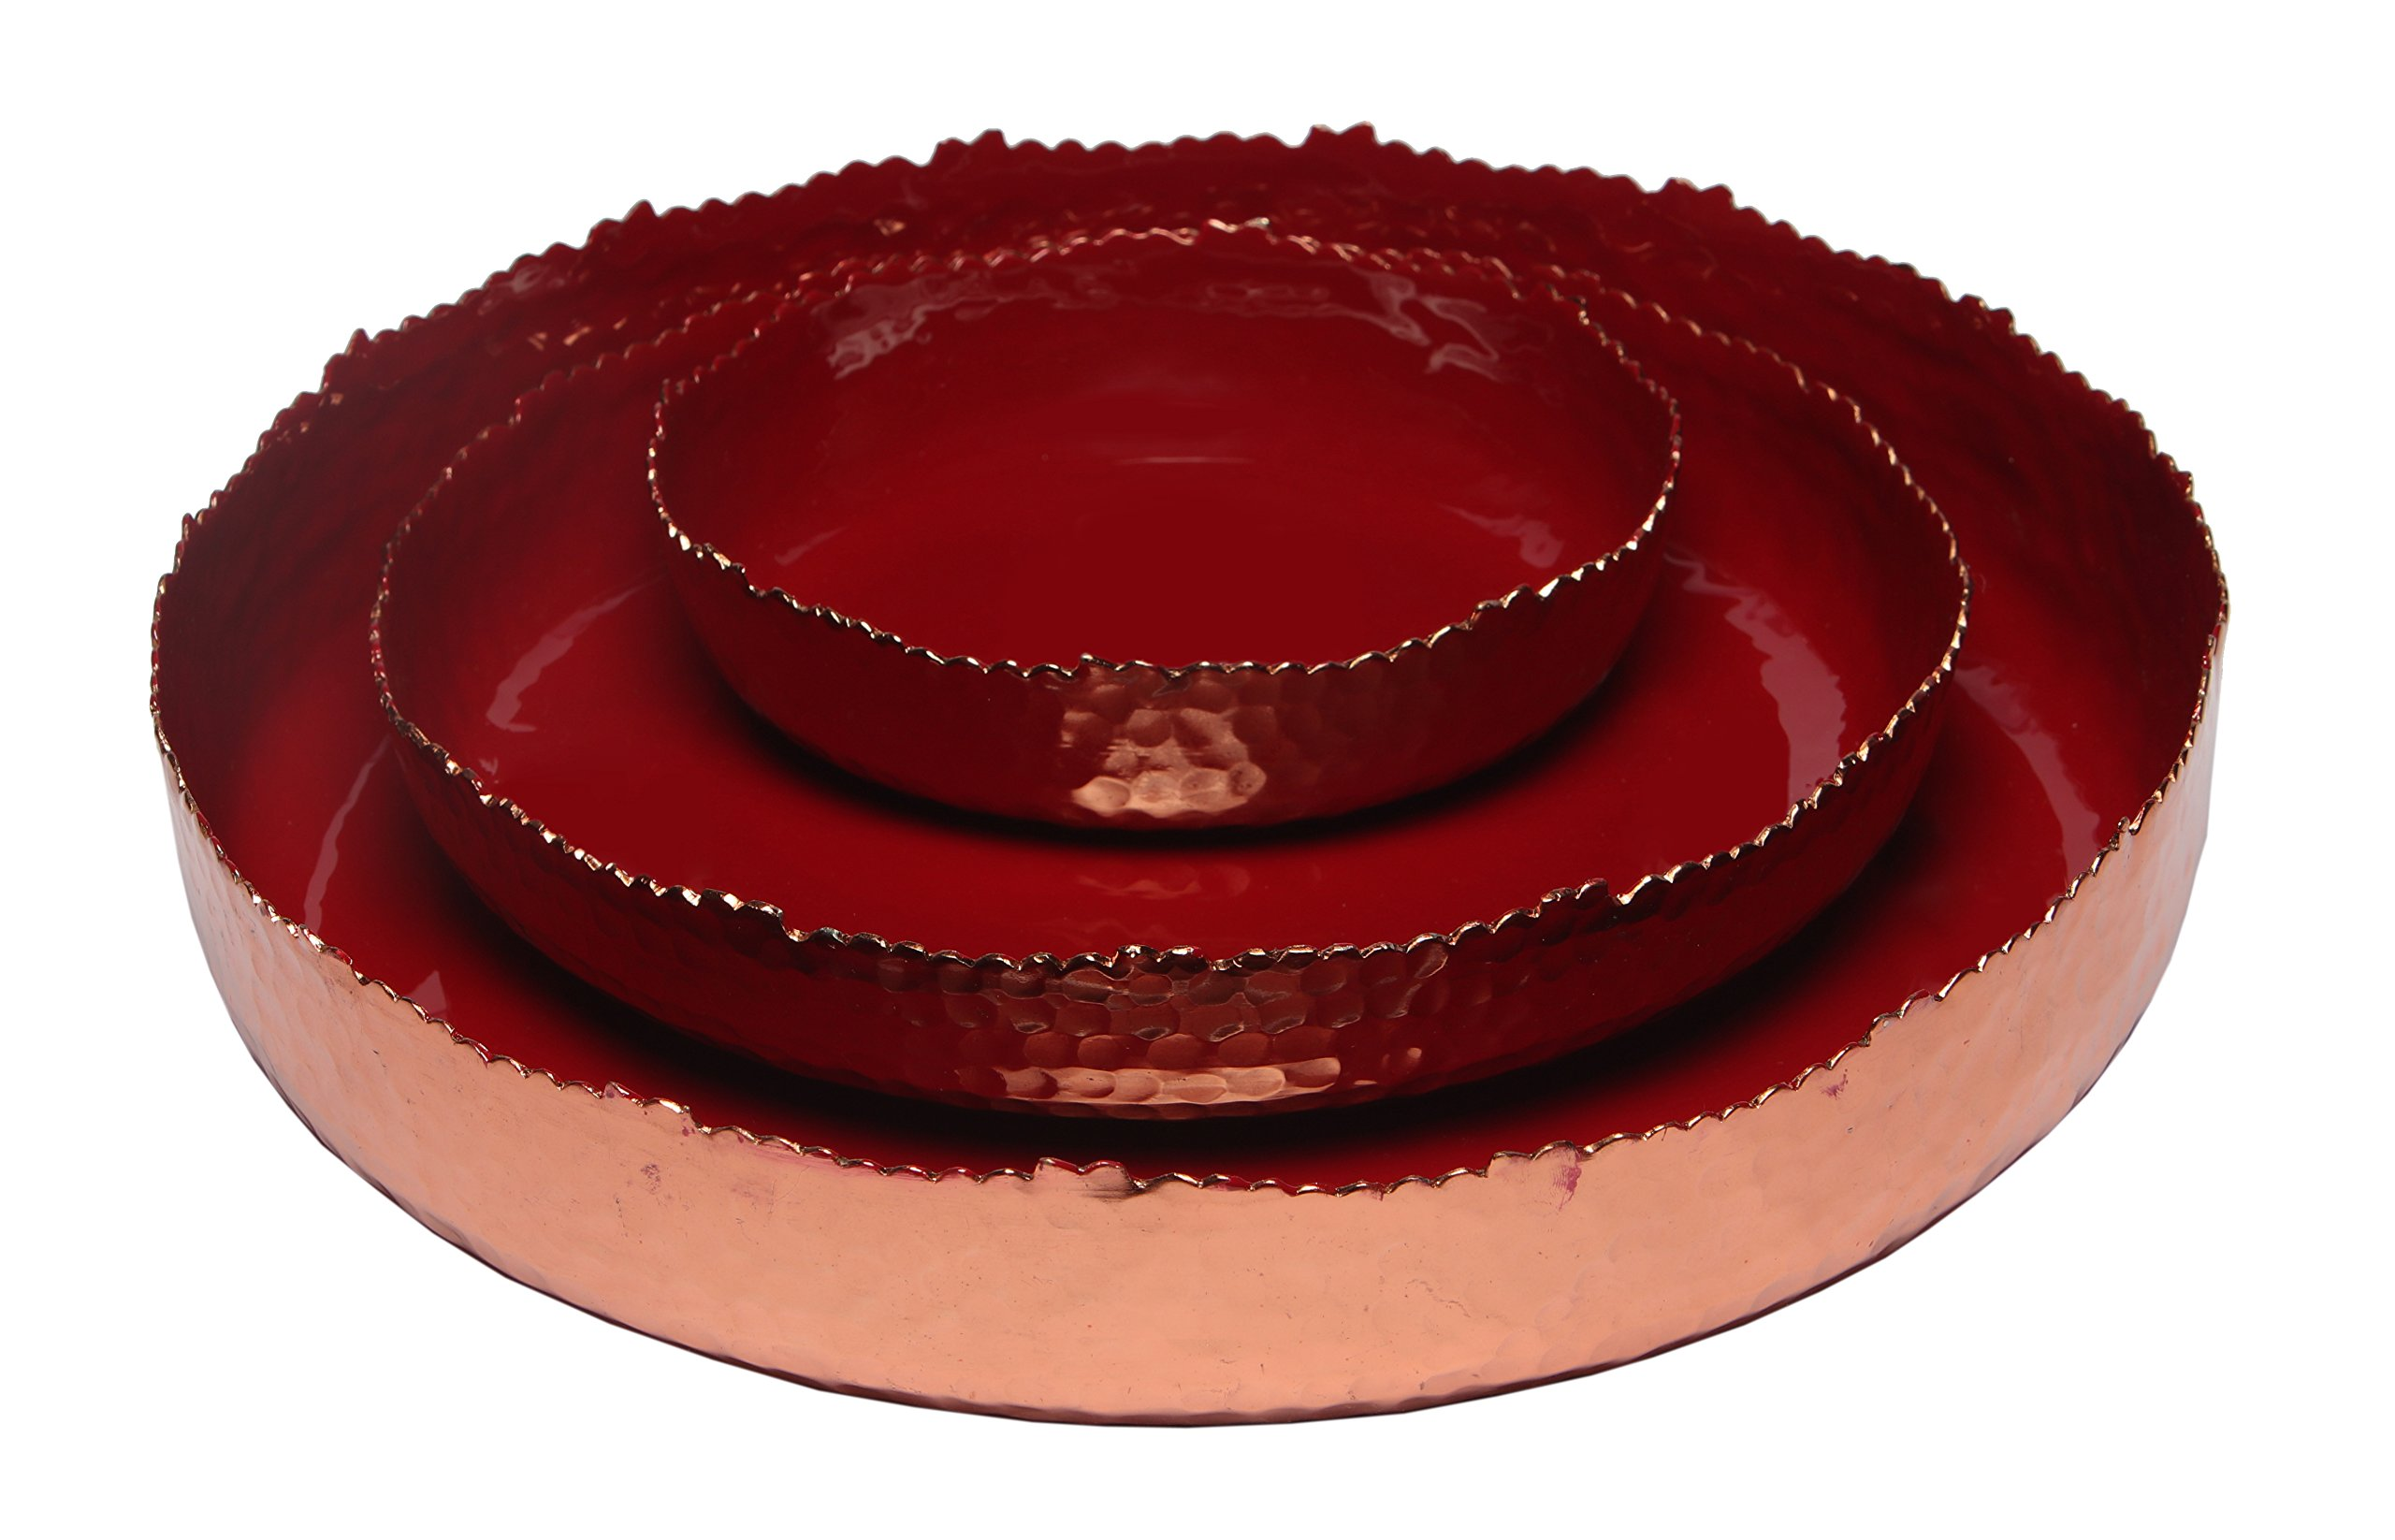 Melange Home Decor Copper Collection, Set of 3 Round Platters - 6'', 9'' and 12'', Color - Paprika Red